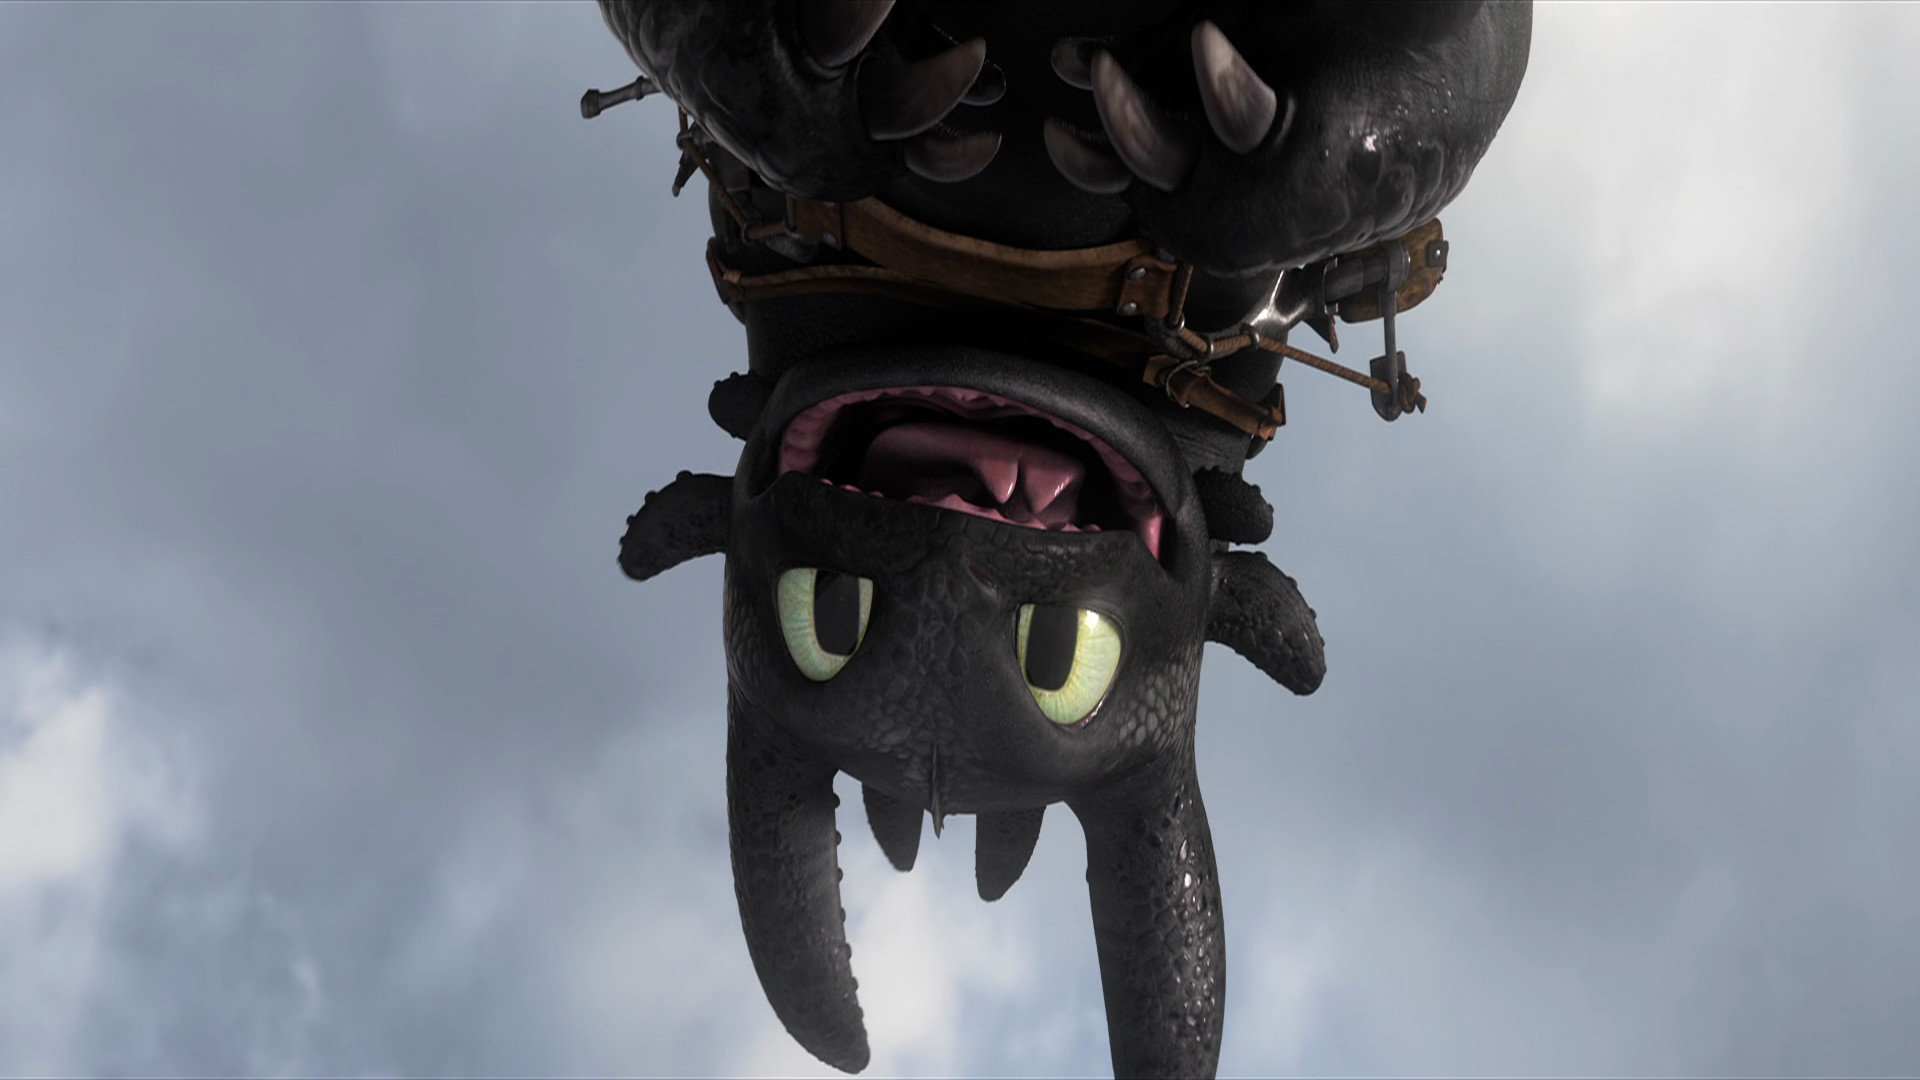 Toothless how to train your dragon wallpapers hd for - How to train your dragon hd download ...